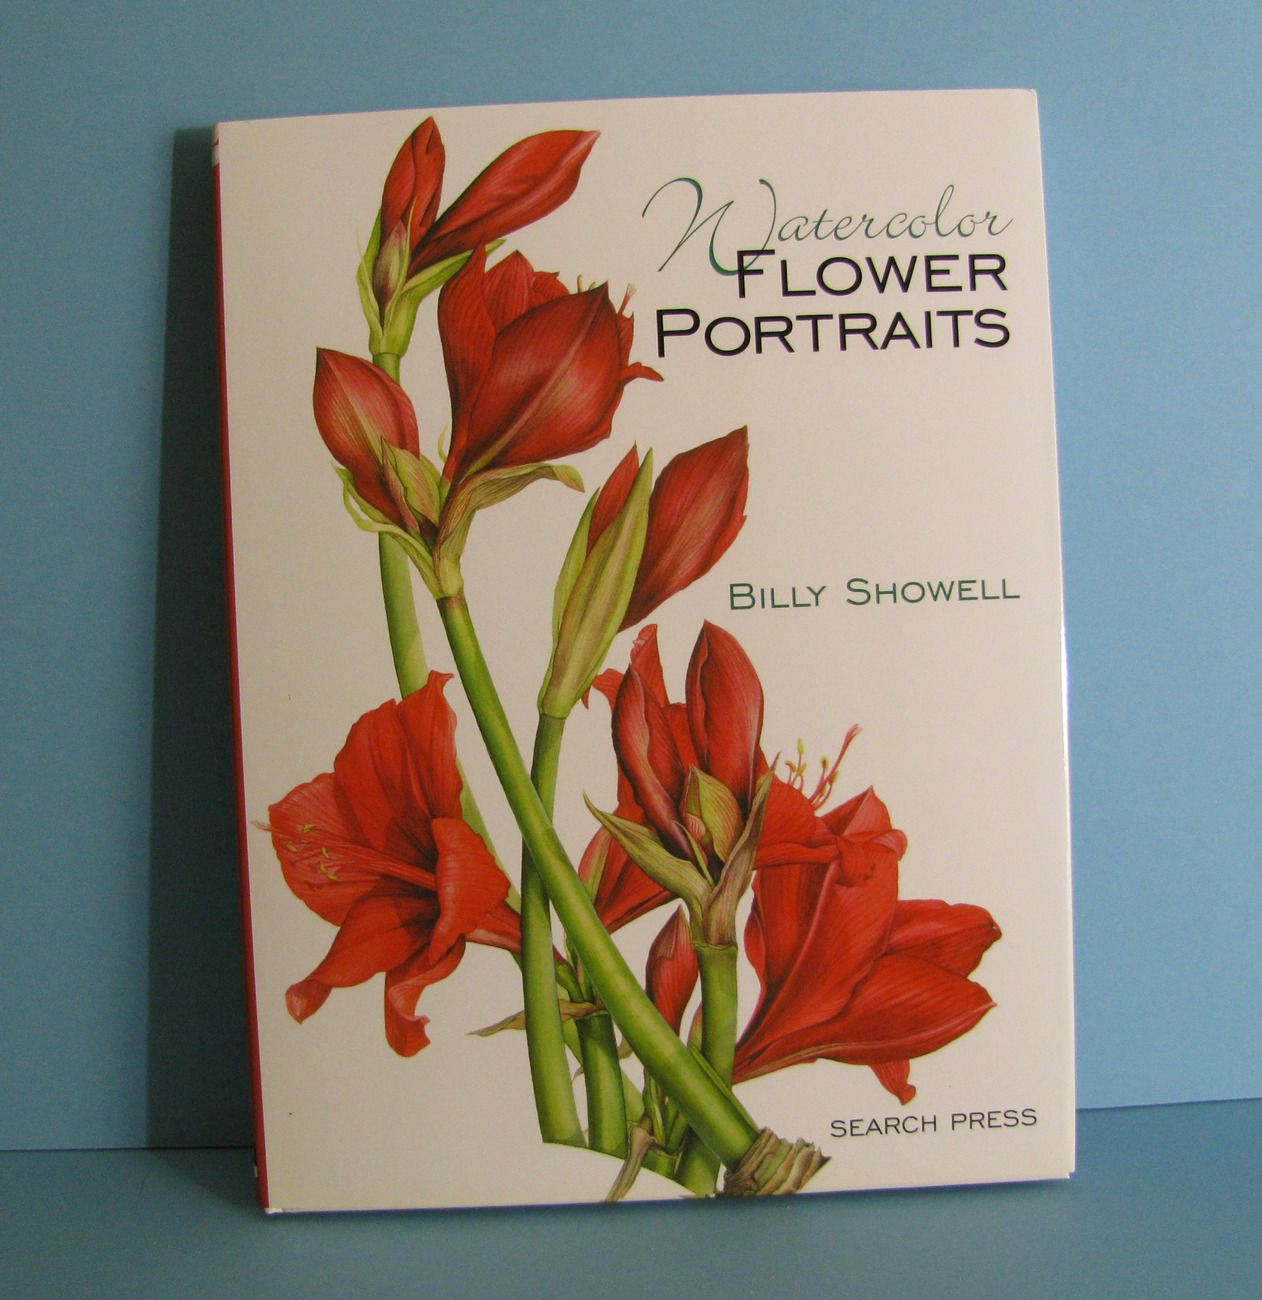 Watercolor books by search press - Watercolour Flower Portraits By Billy Showell Available At Book Depository With Free Delivery Worldwide